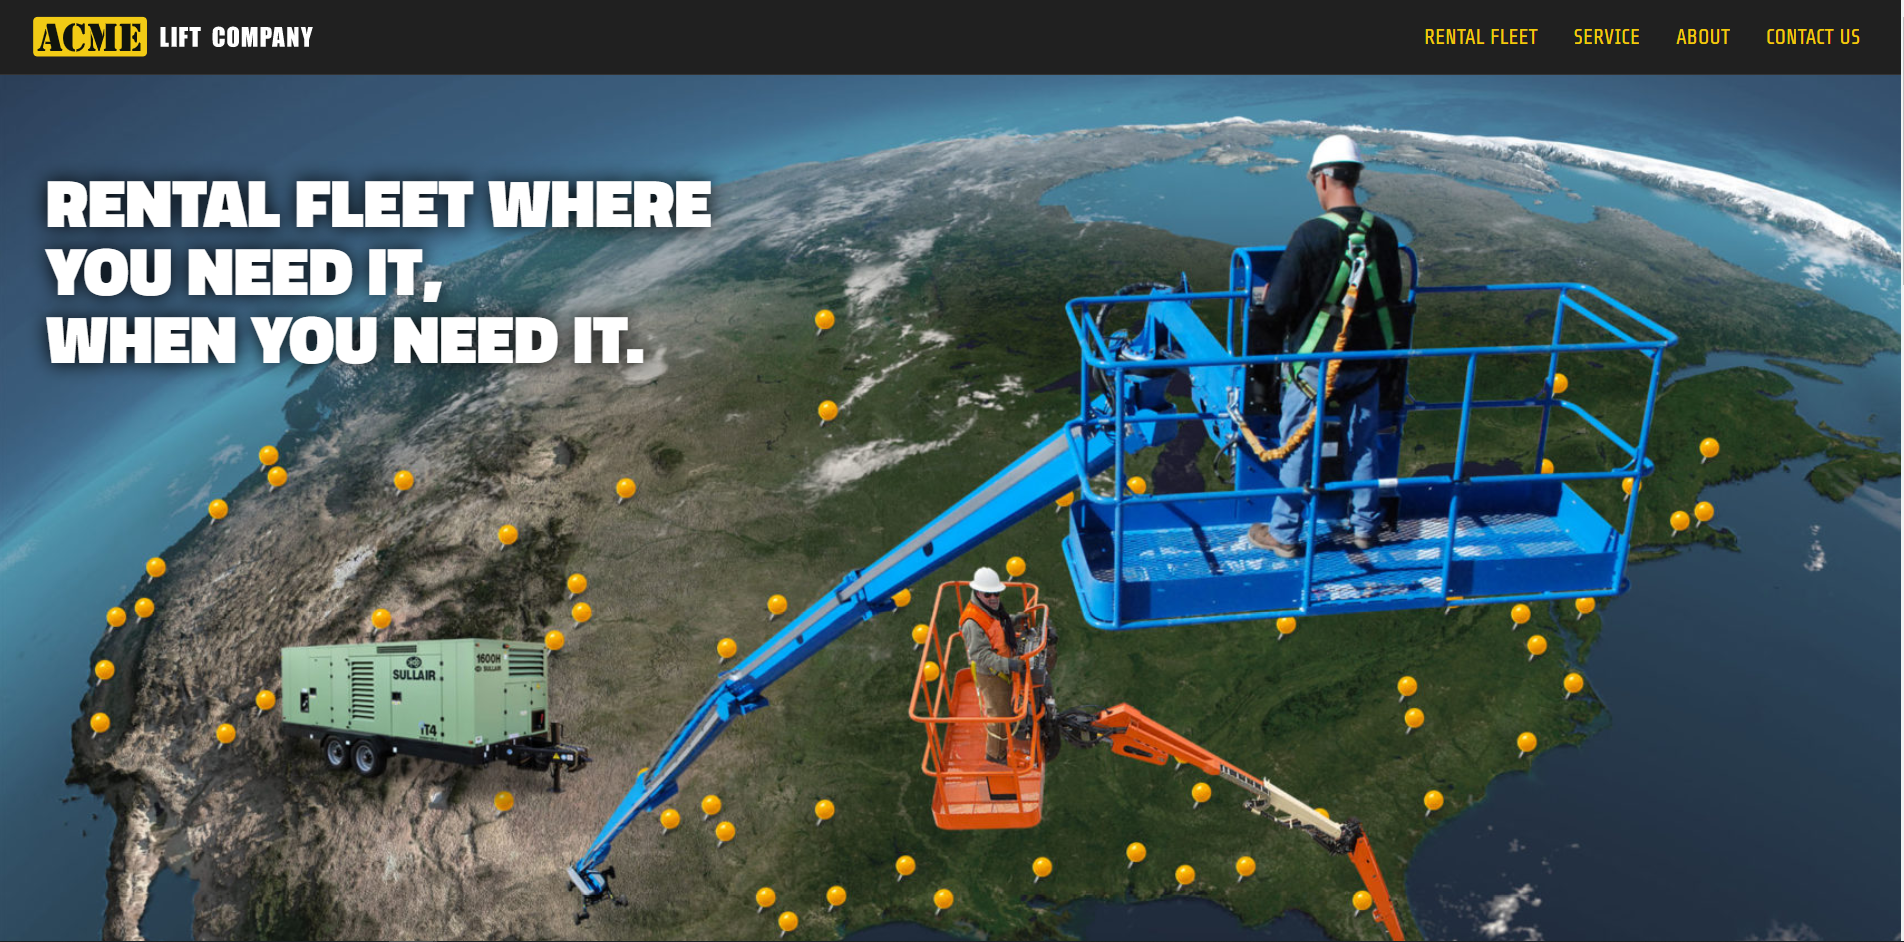 The ACME lift Company homepage